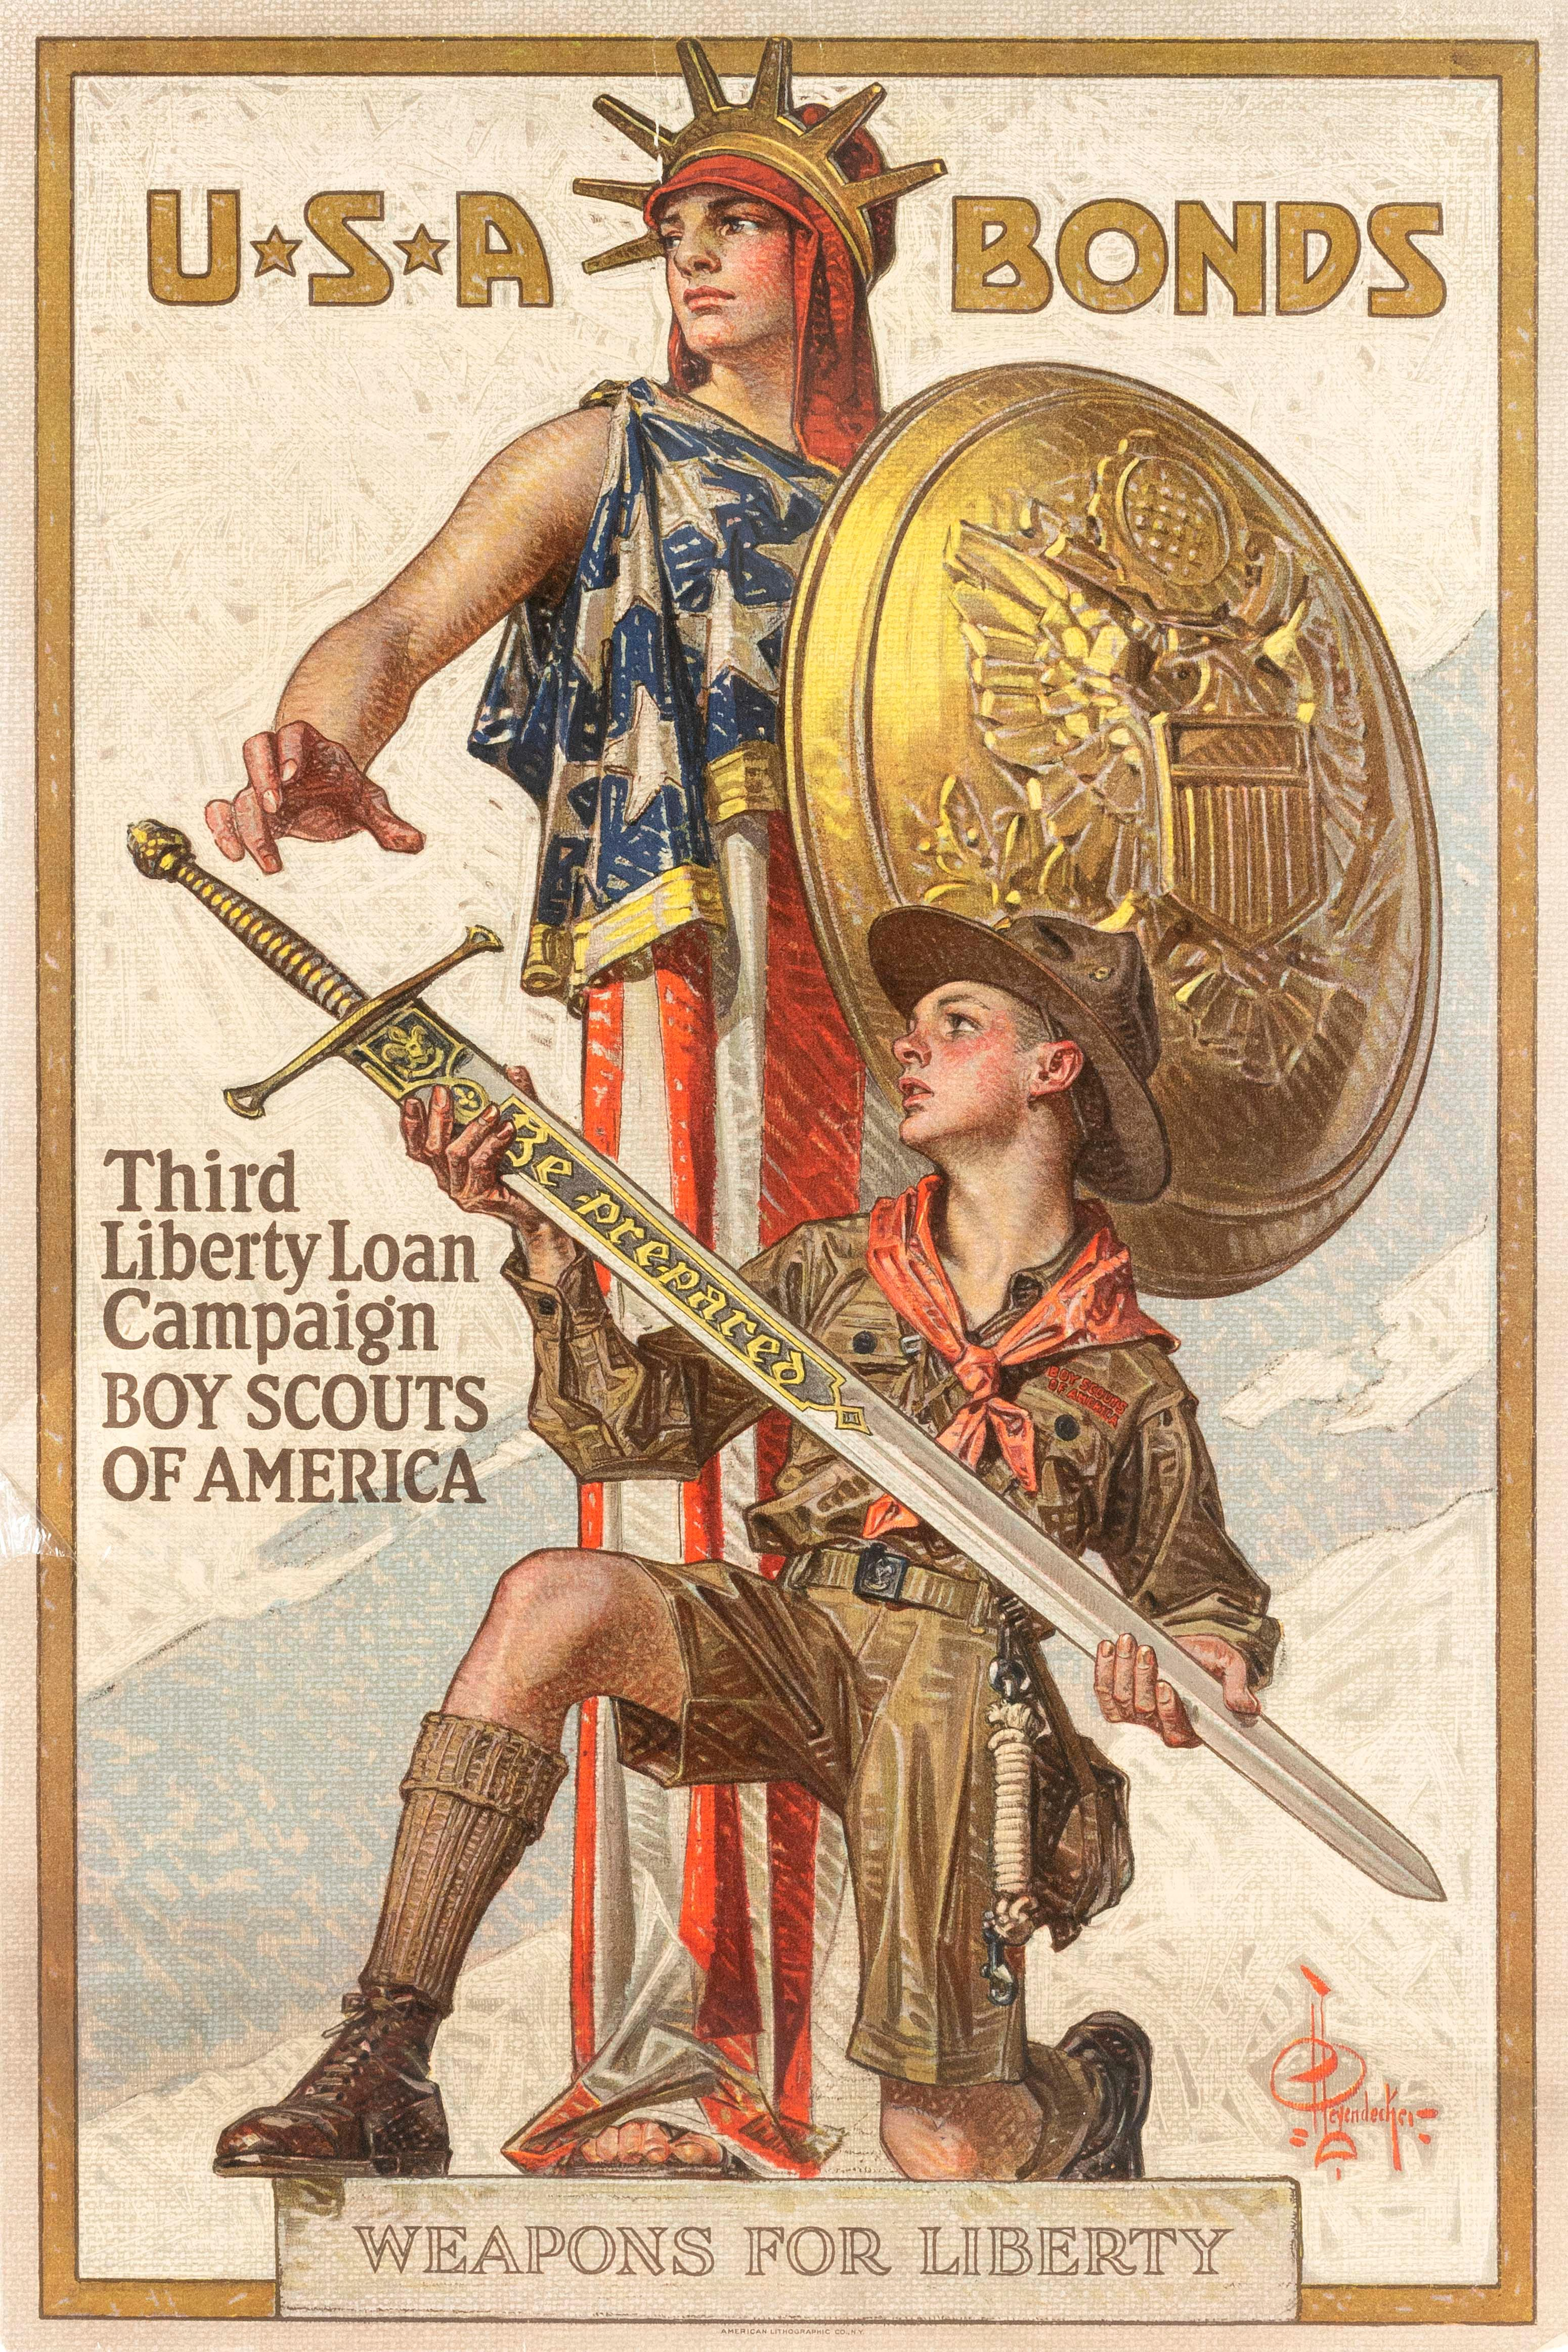 """""""U*S*A BONDS THIRD LIBERTY LOAN CAMPAIGN BOY SCOUTS OF AMERICA WEAPONS FOR LIBERTY"""" WORLD WAR I POSTER By Joseph Christian Leyendeck..."""